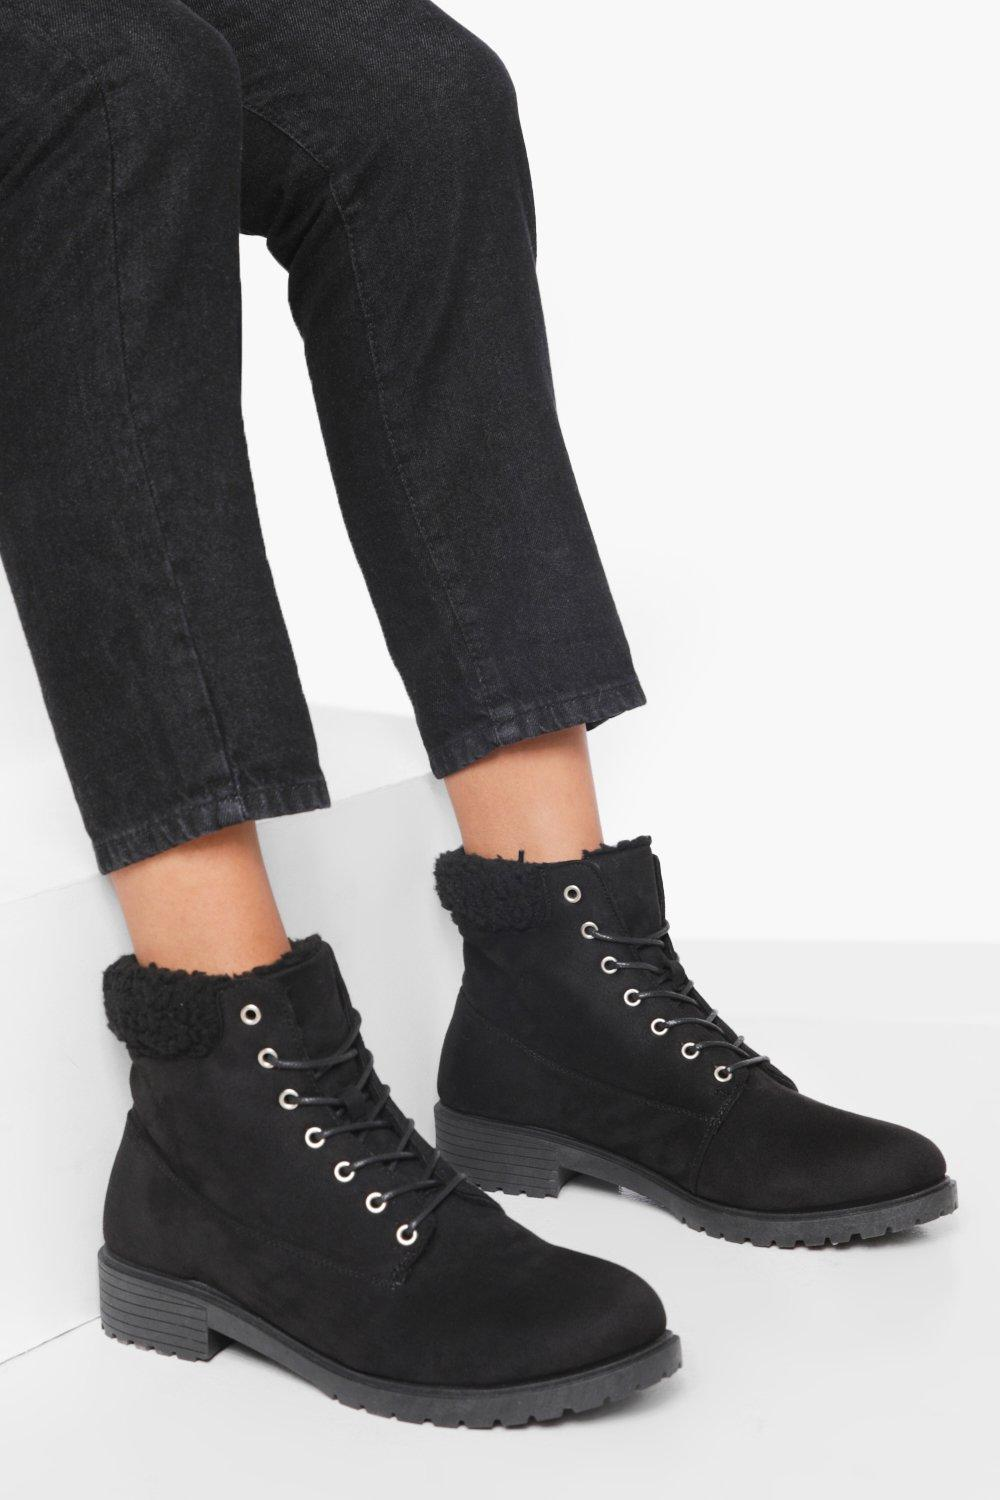 Vintage Boots, Retro Boots Womens Wide Fit Shearling Cuff Hiker Boot - Black - 10 $35.00 AT vintagedancer.com